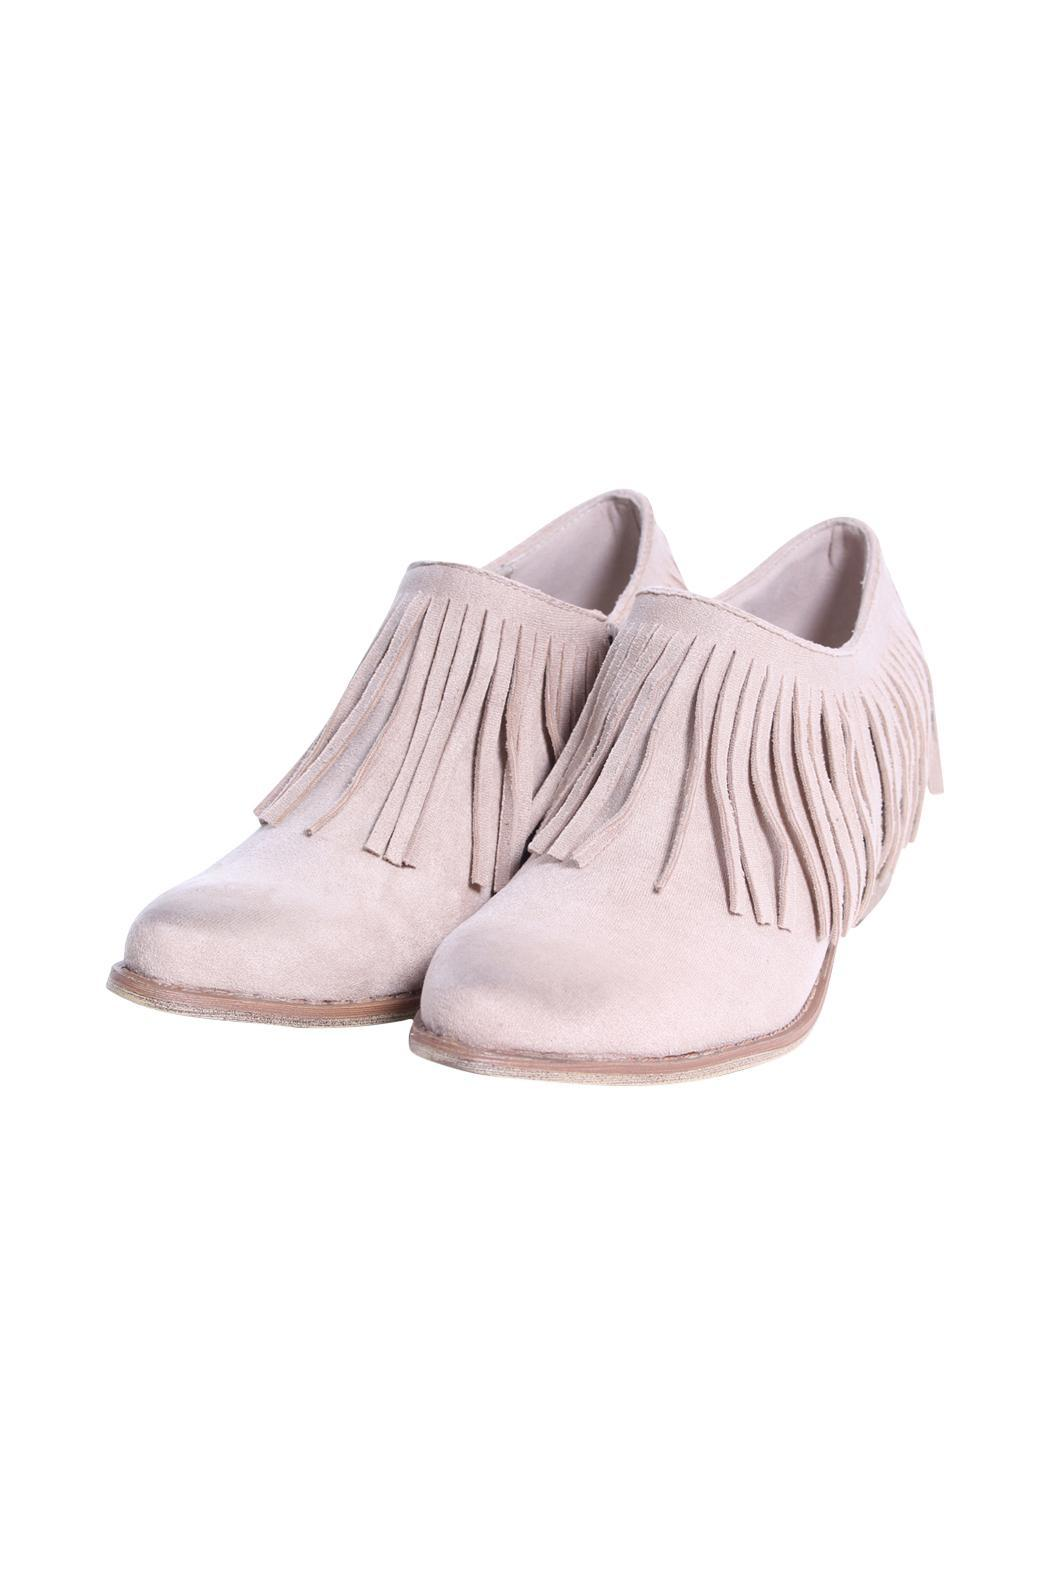 Coconuts by Matisse Fringe Shoe Bootie - Back Cropped Image